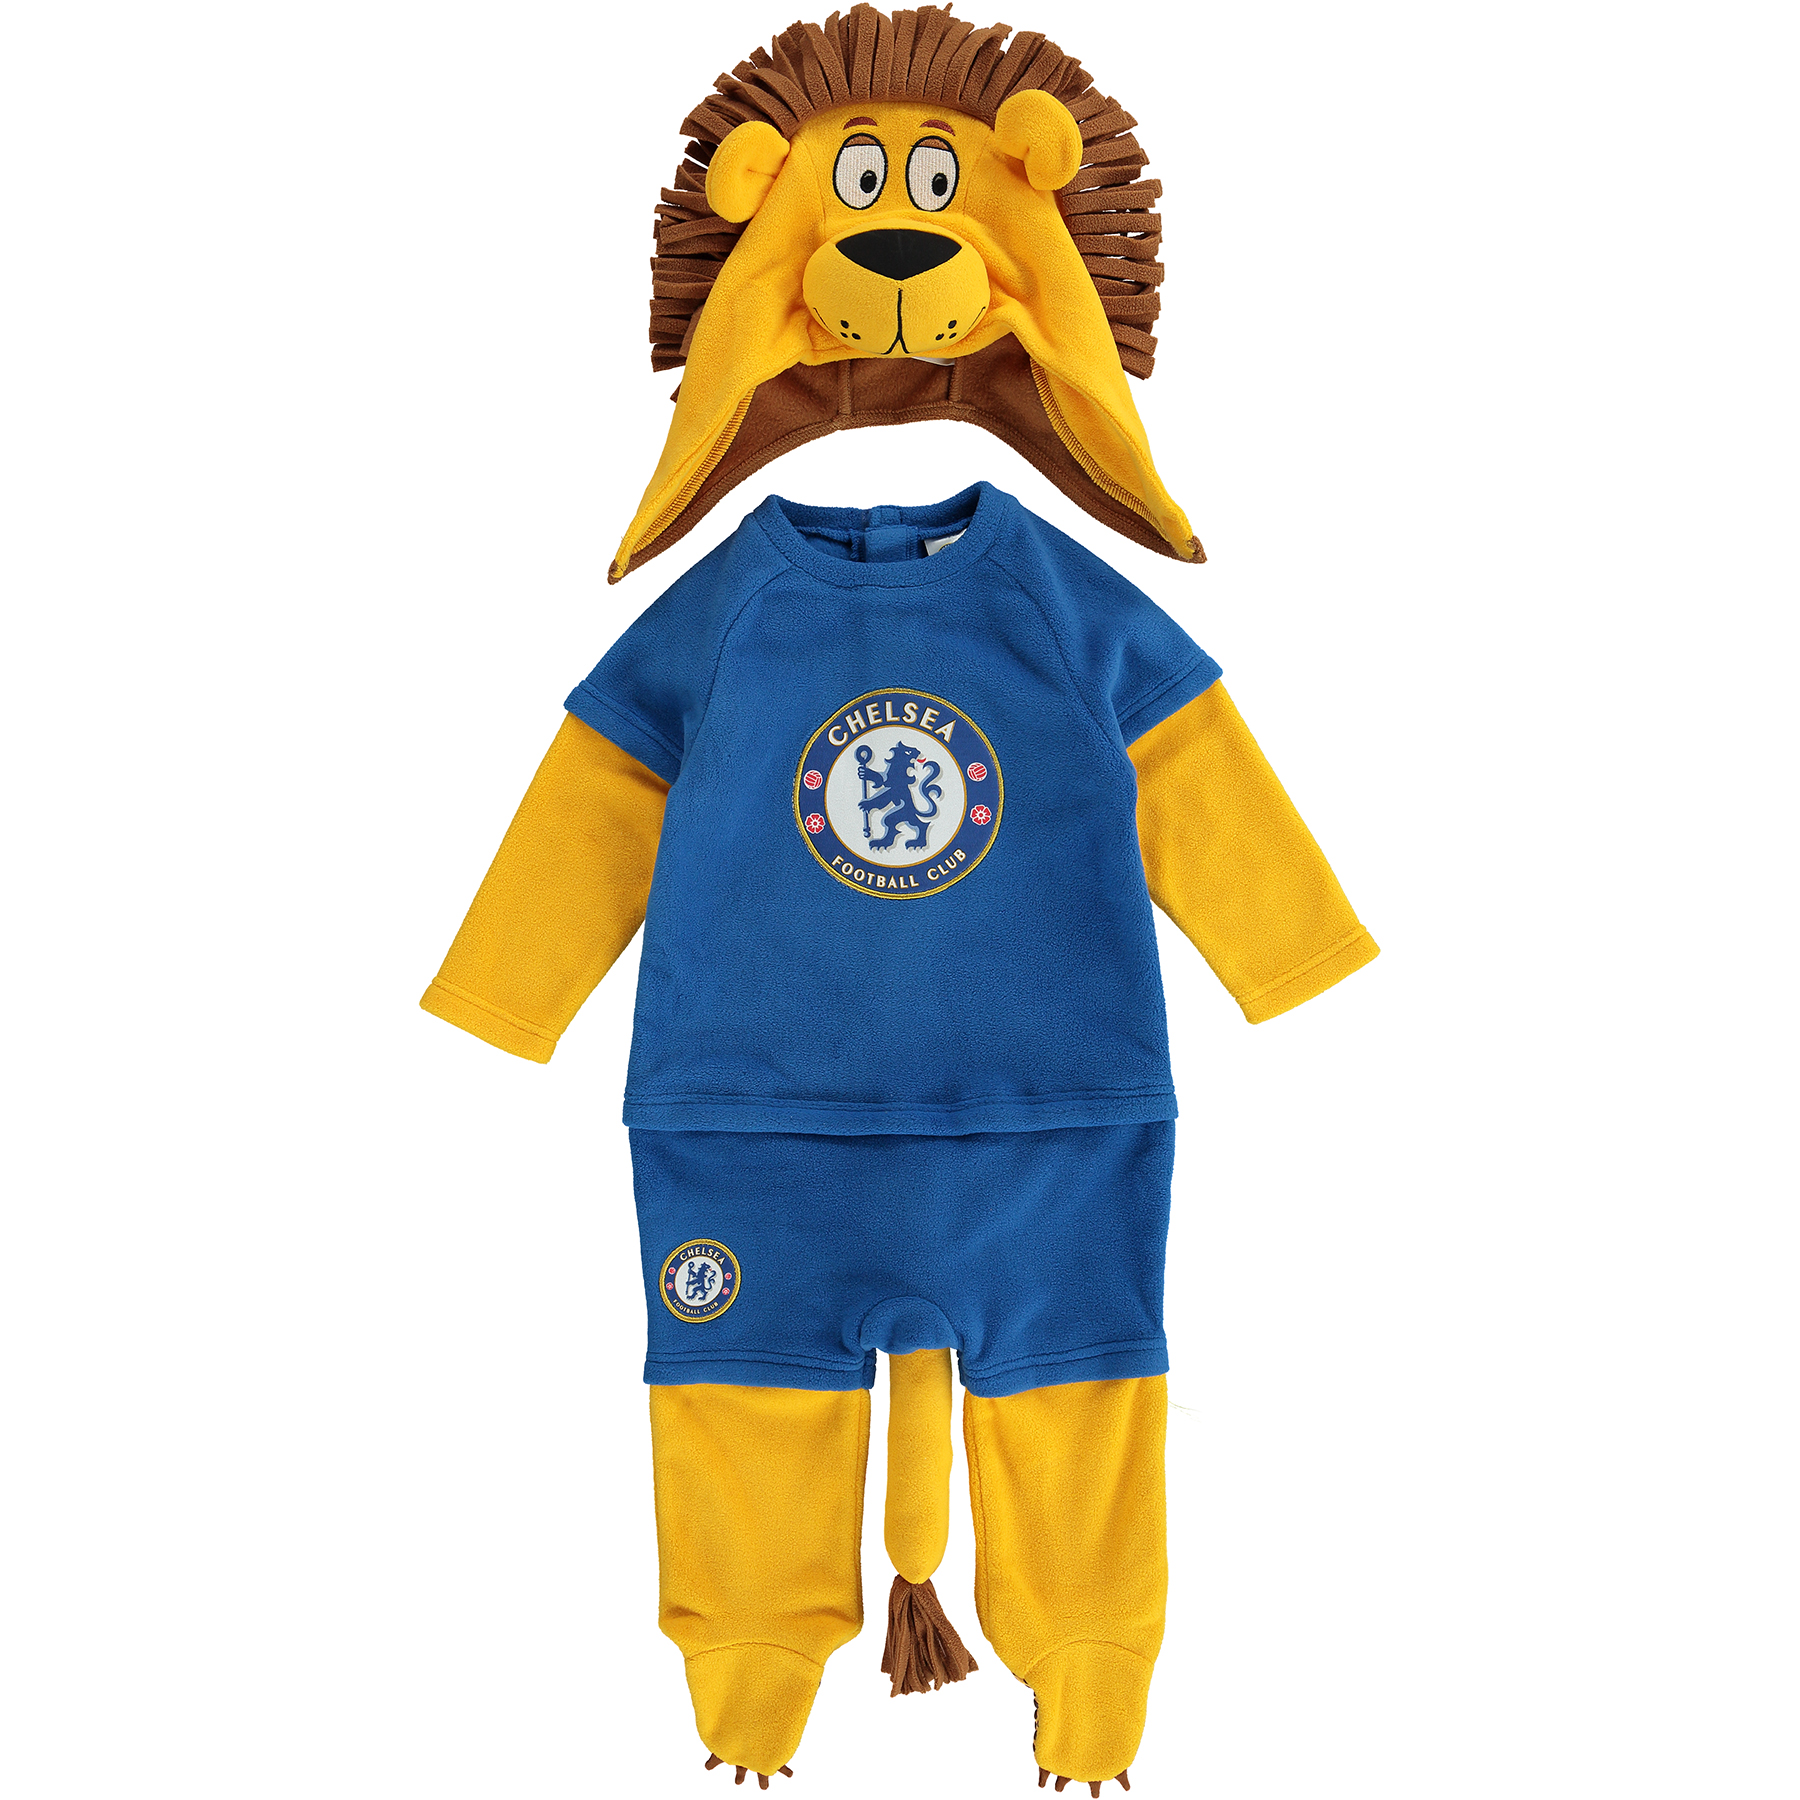 Chelsea Stamford The Lion Dress Up - Royal - Baby